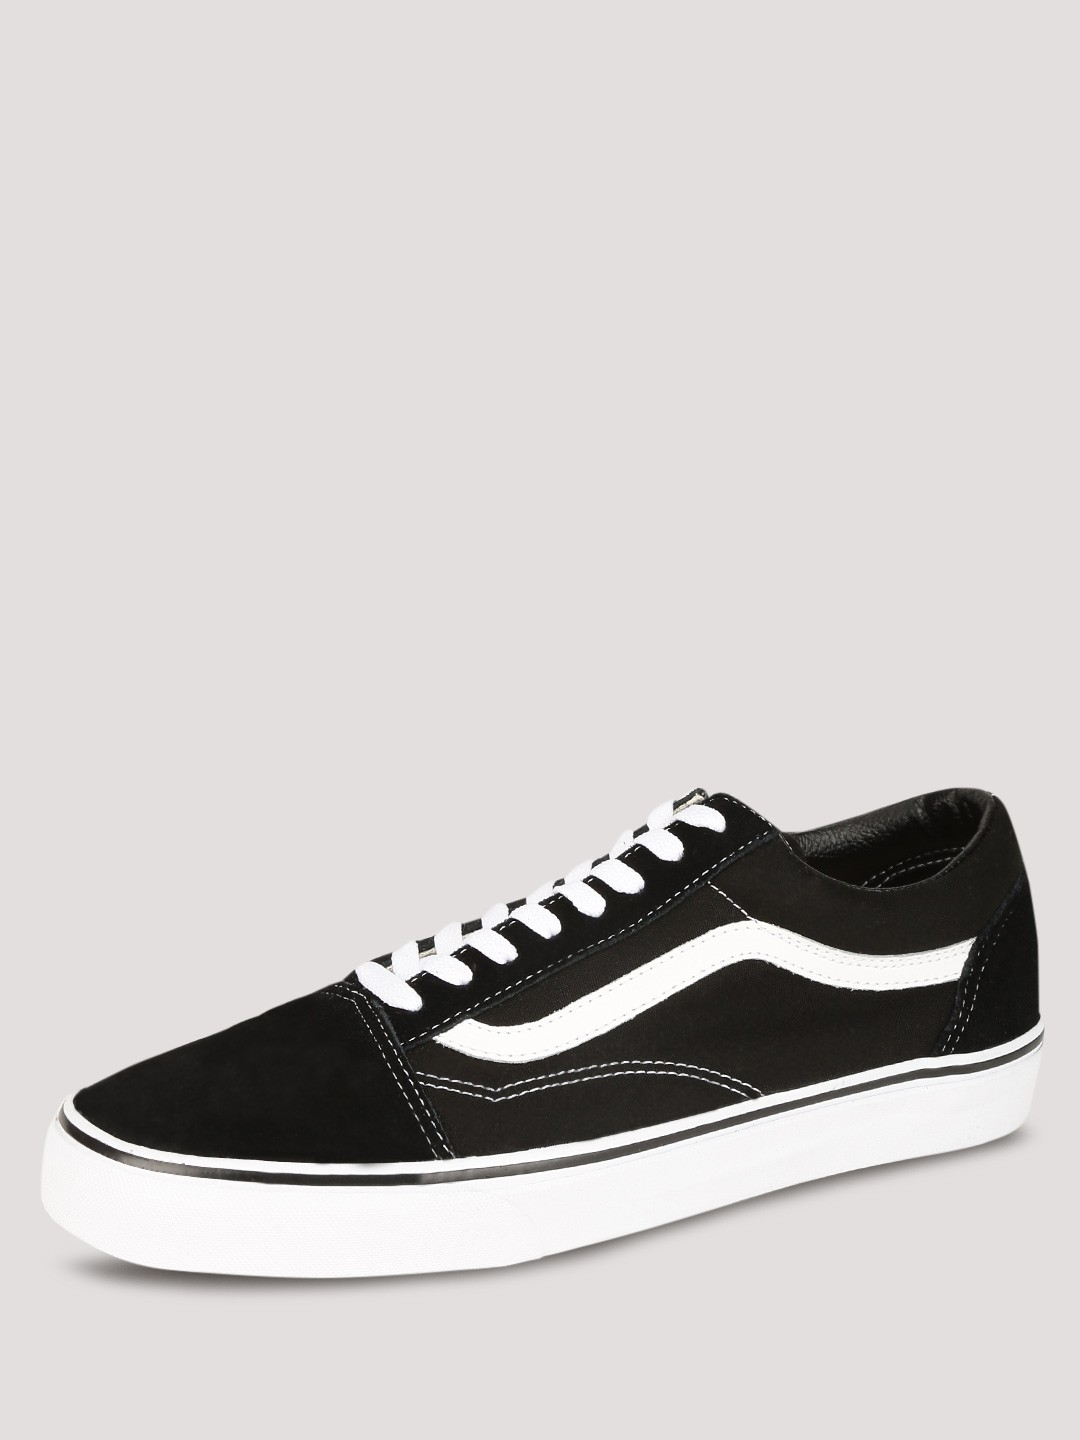 vans old skool shoes india